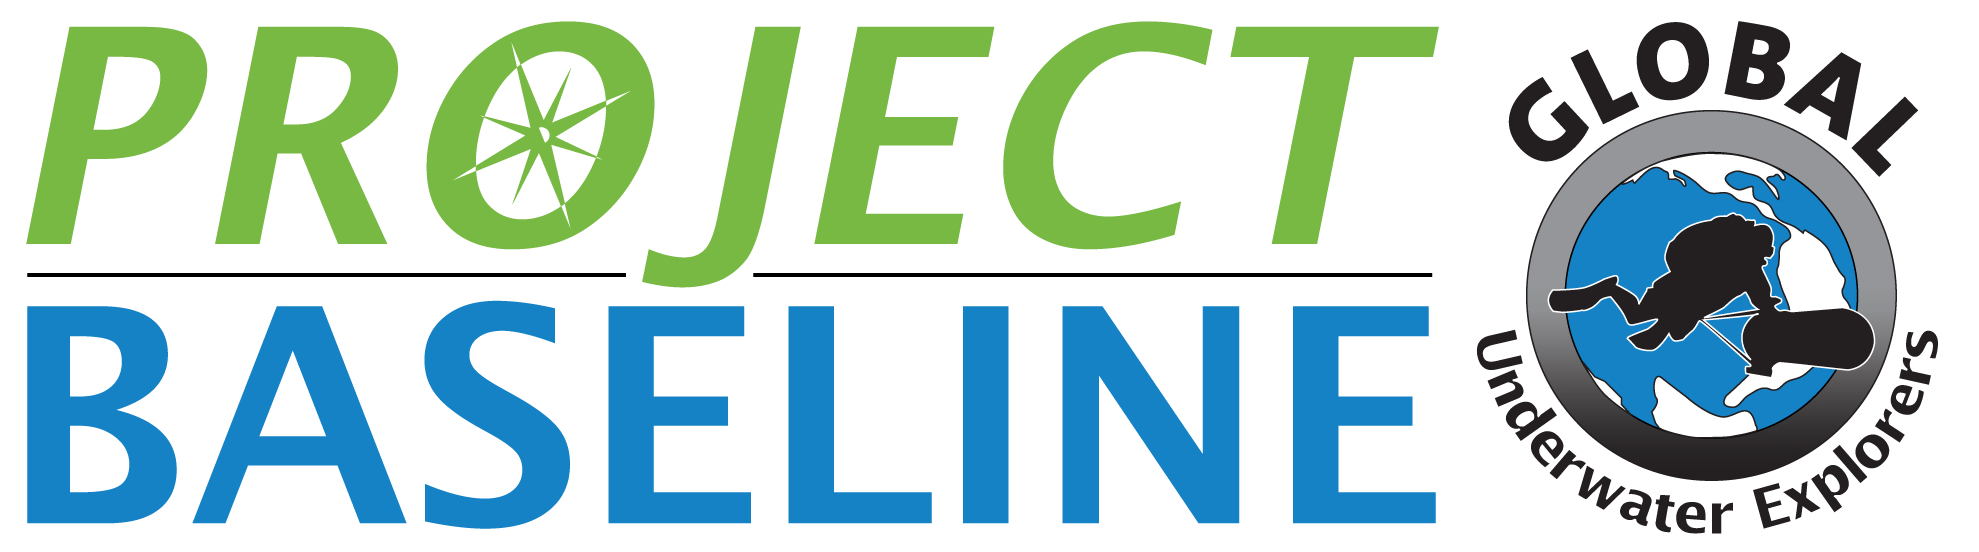 Project-Baseline-logo-2017-White-01.png